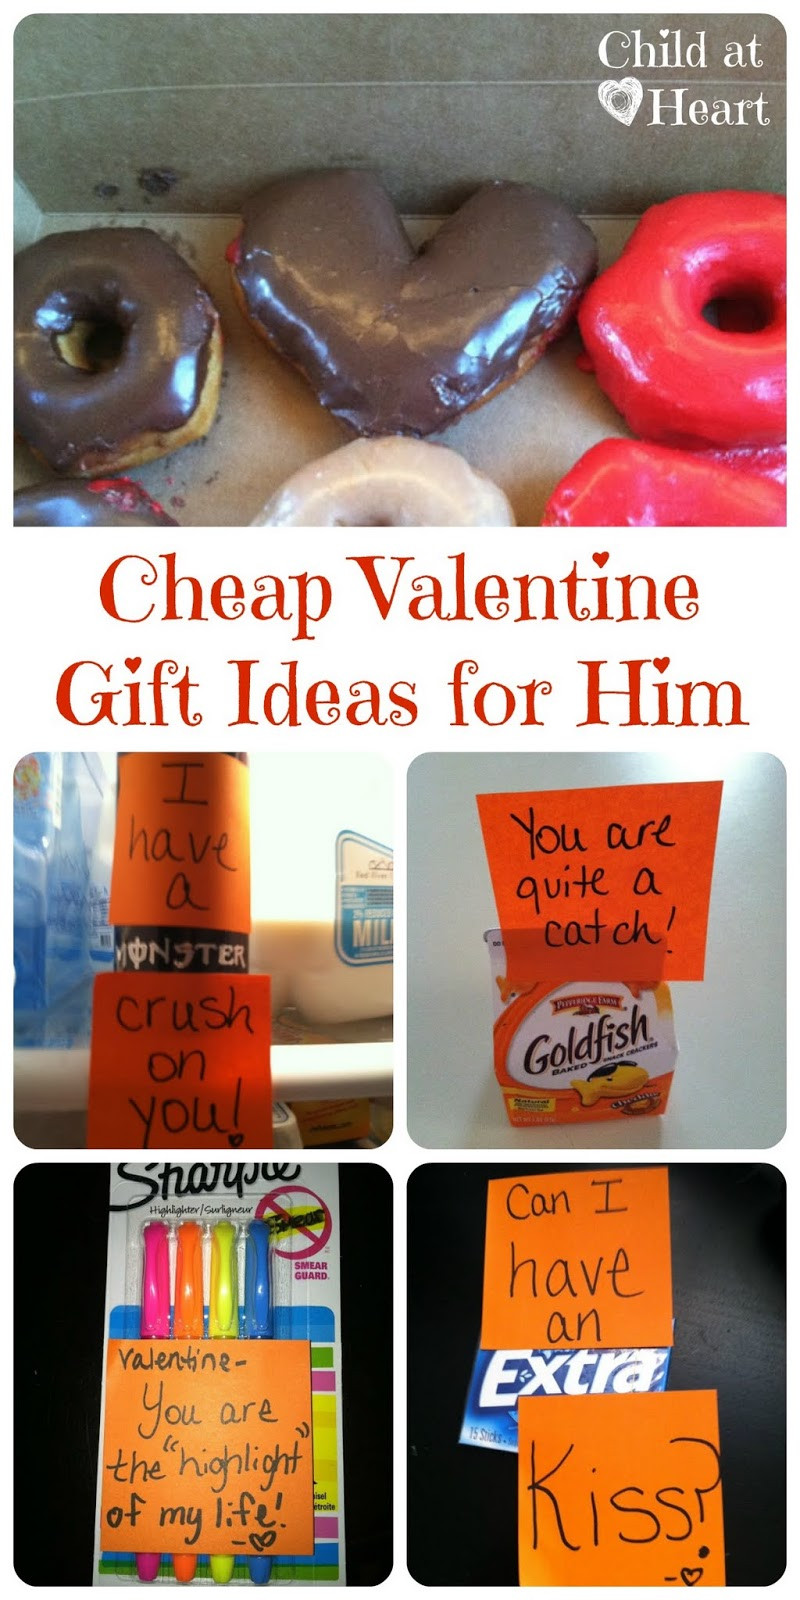 Valentine Gift For Husband Ideas  Cheap Valentine Gift Ideas for Him Child at Heart Blog